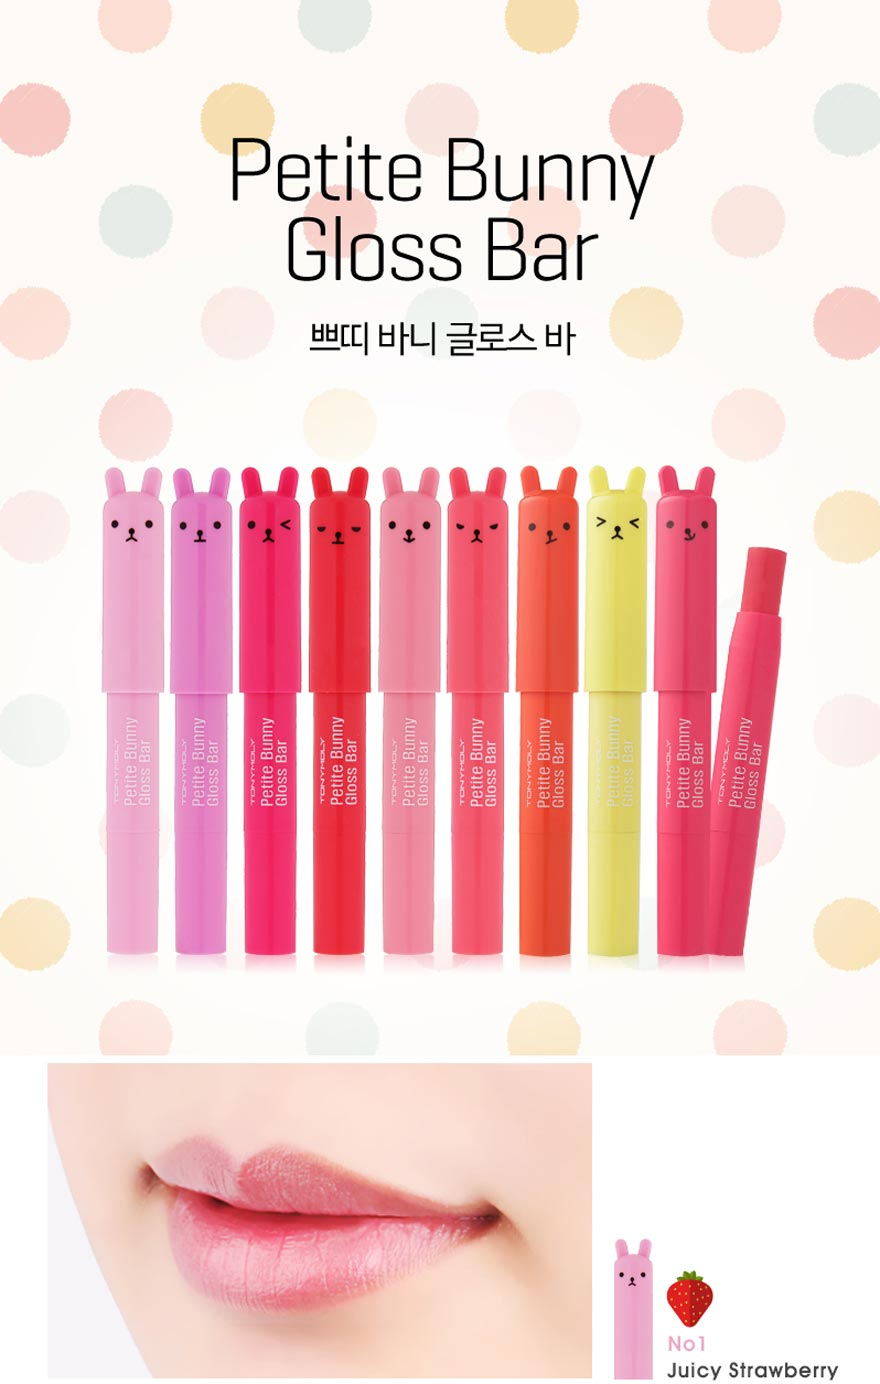 [Tonymoly] Petite Bunny Gloss Bar #01 (Juicy Strawberry)